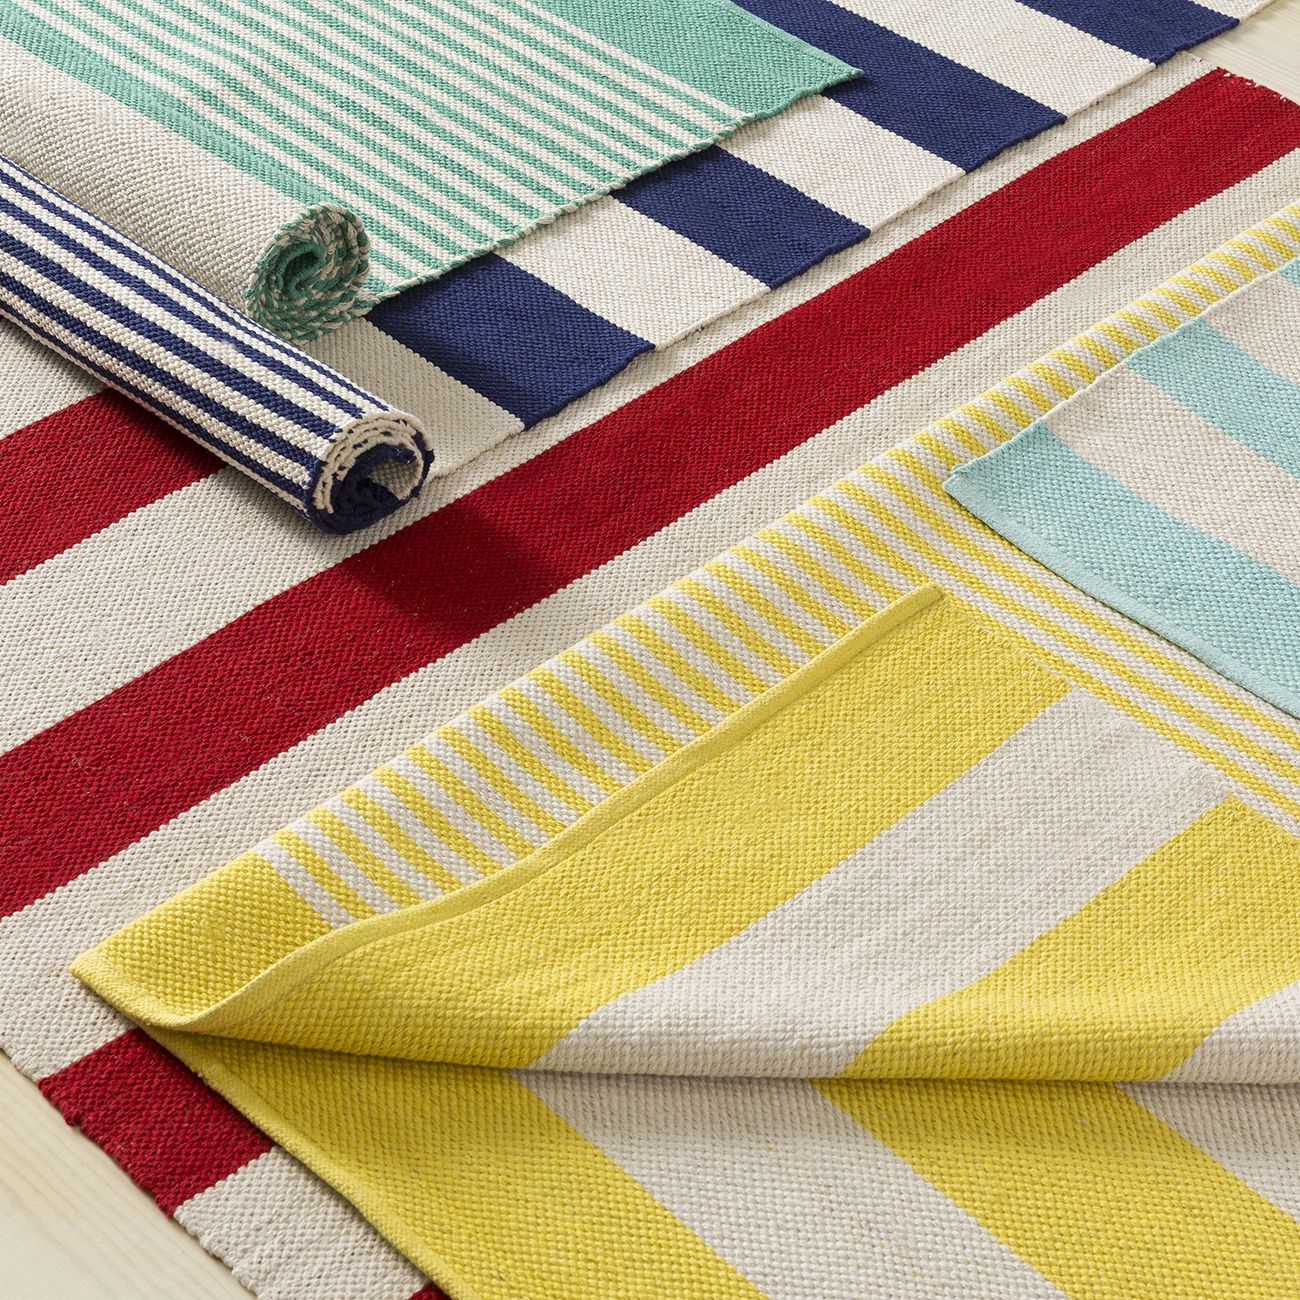 Surya striped rugs lend a fresh, cheery and coastal look - perfect ...